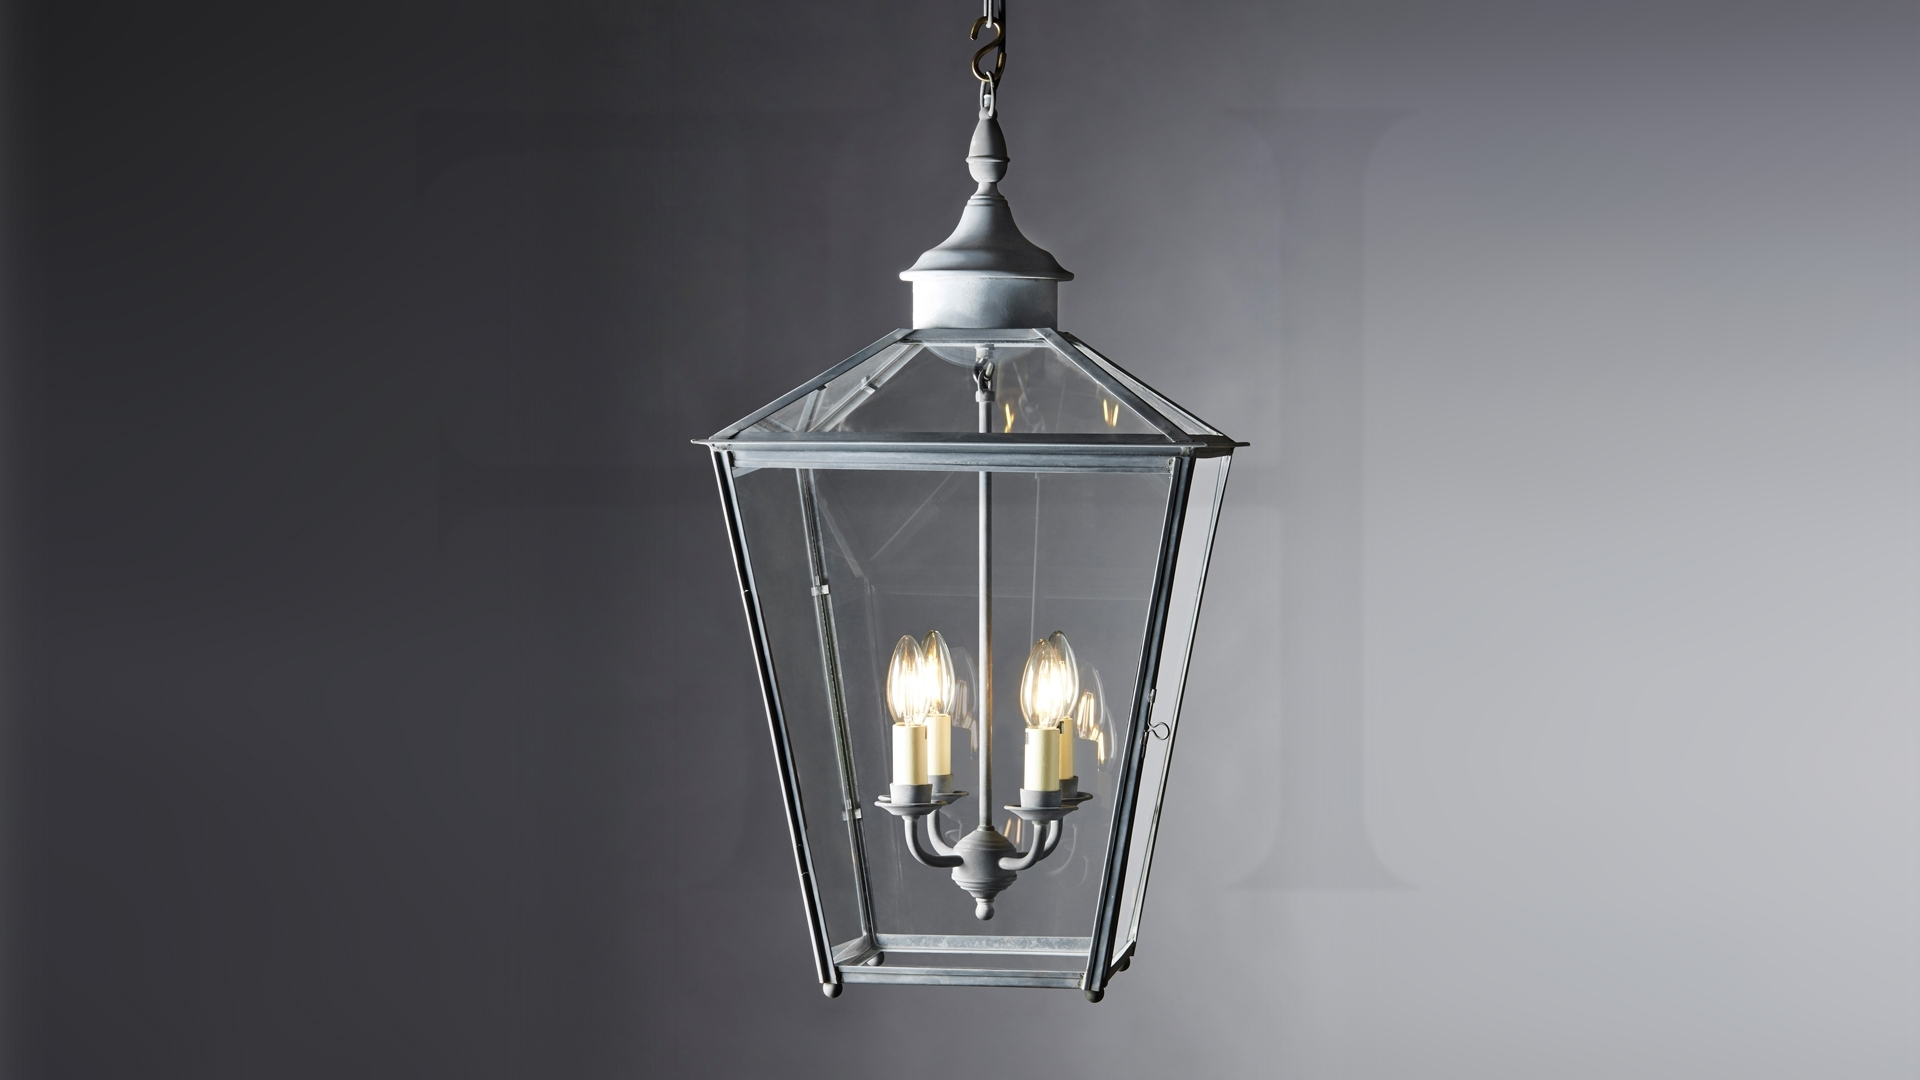 Well Known Buy Hanging Lanterns Online, Pendant Hanging Lights – Chelsea, South Inside Outdoor Hanging Lamps Online (View 13 of 20)